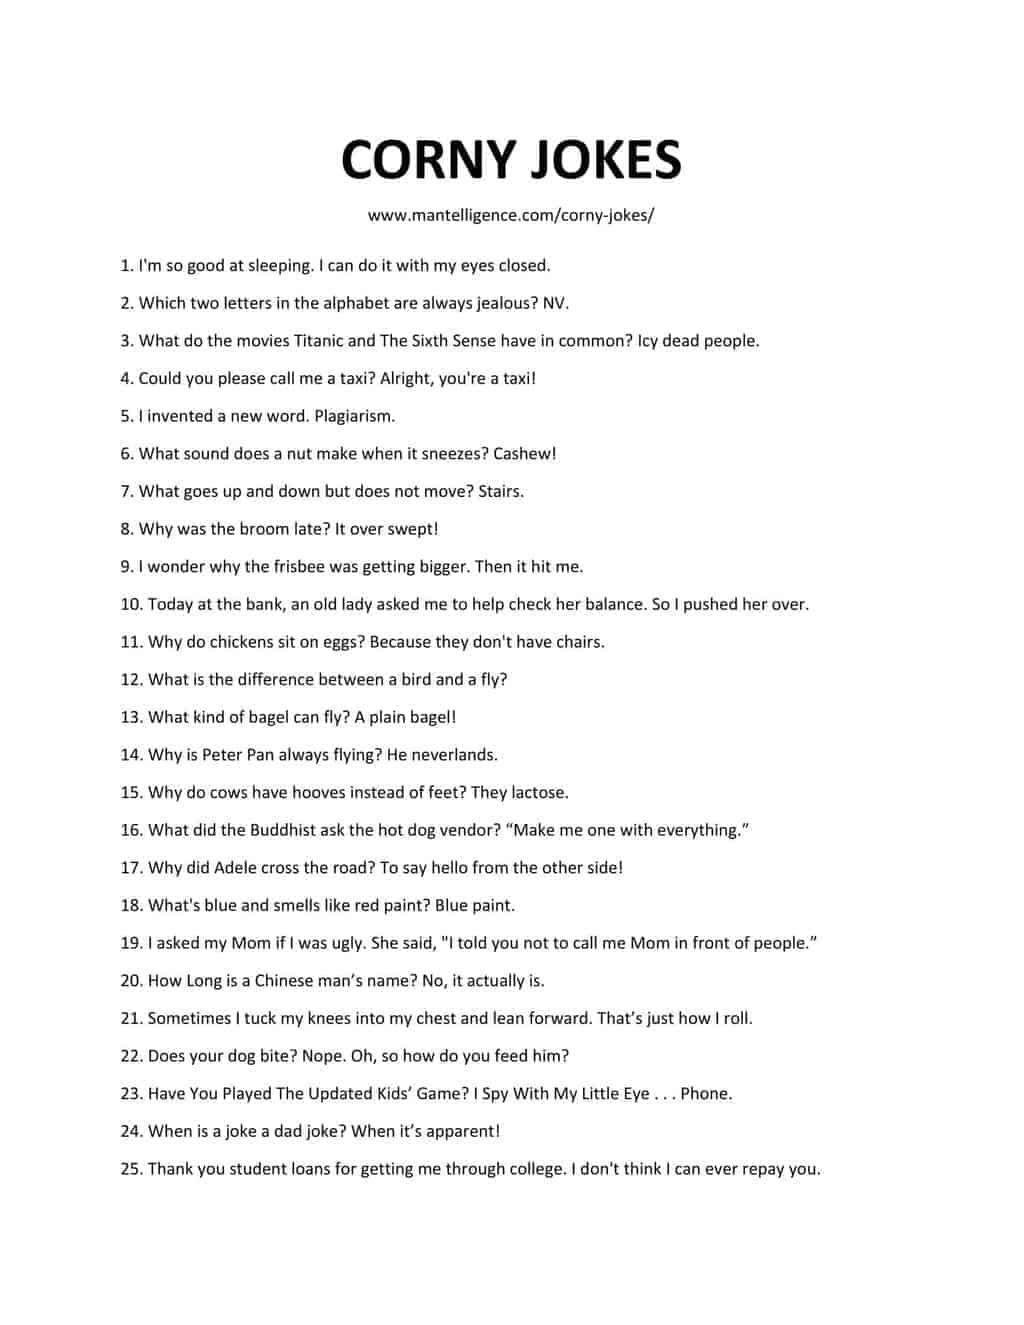 list of CORNY JOKES 3